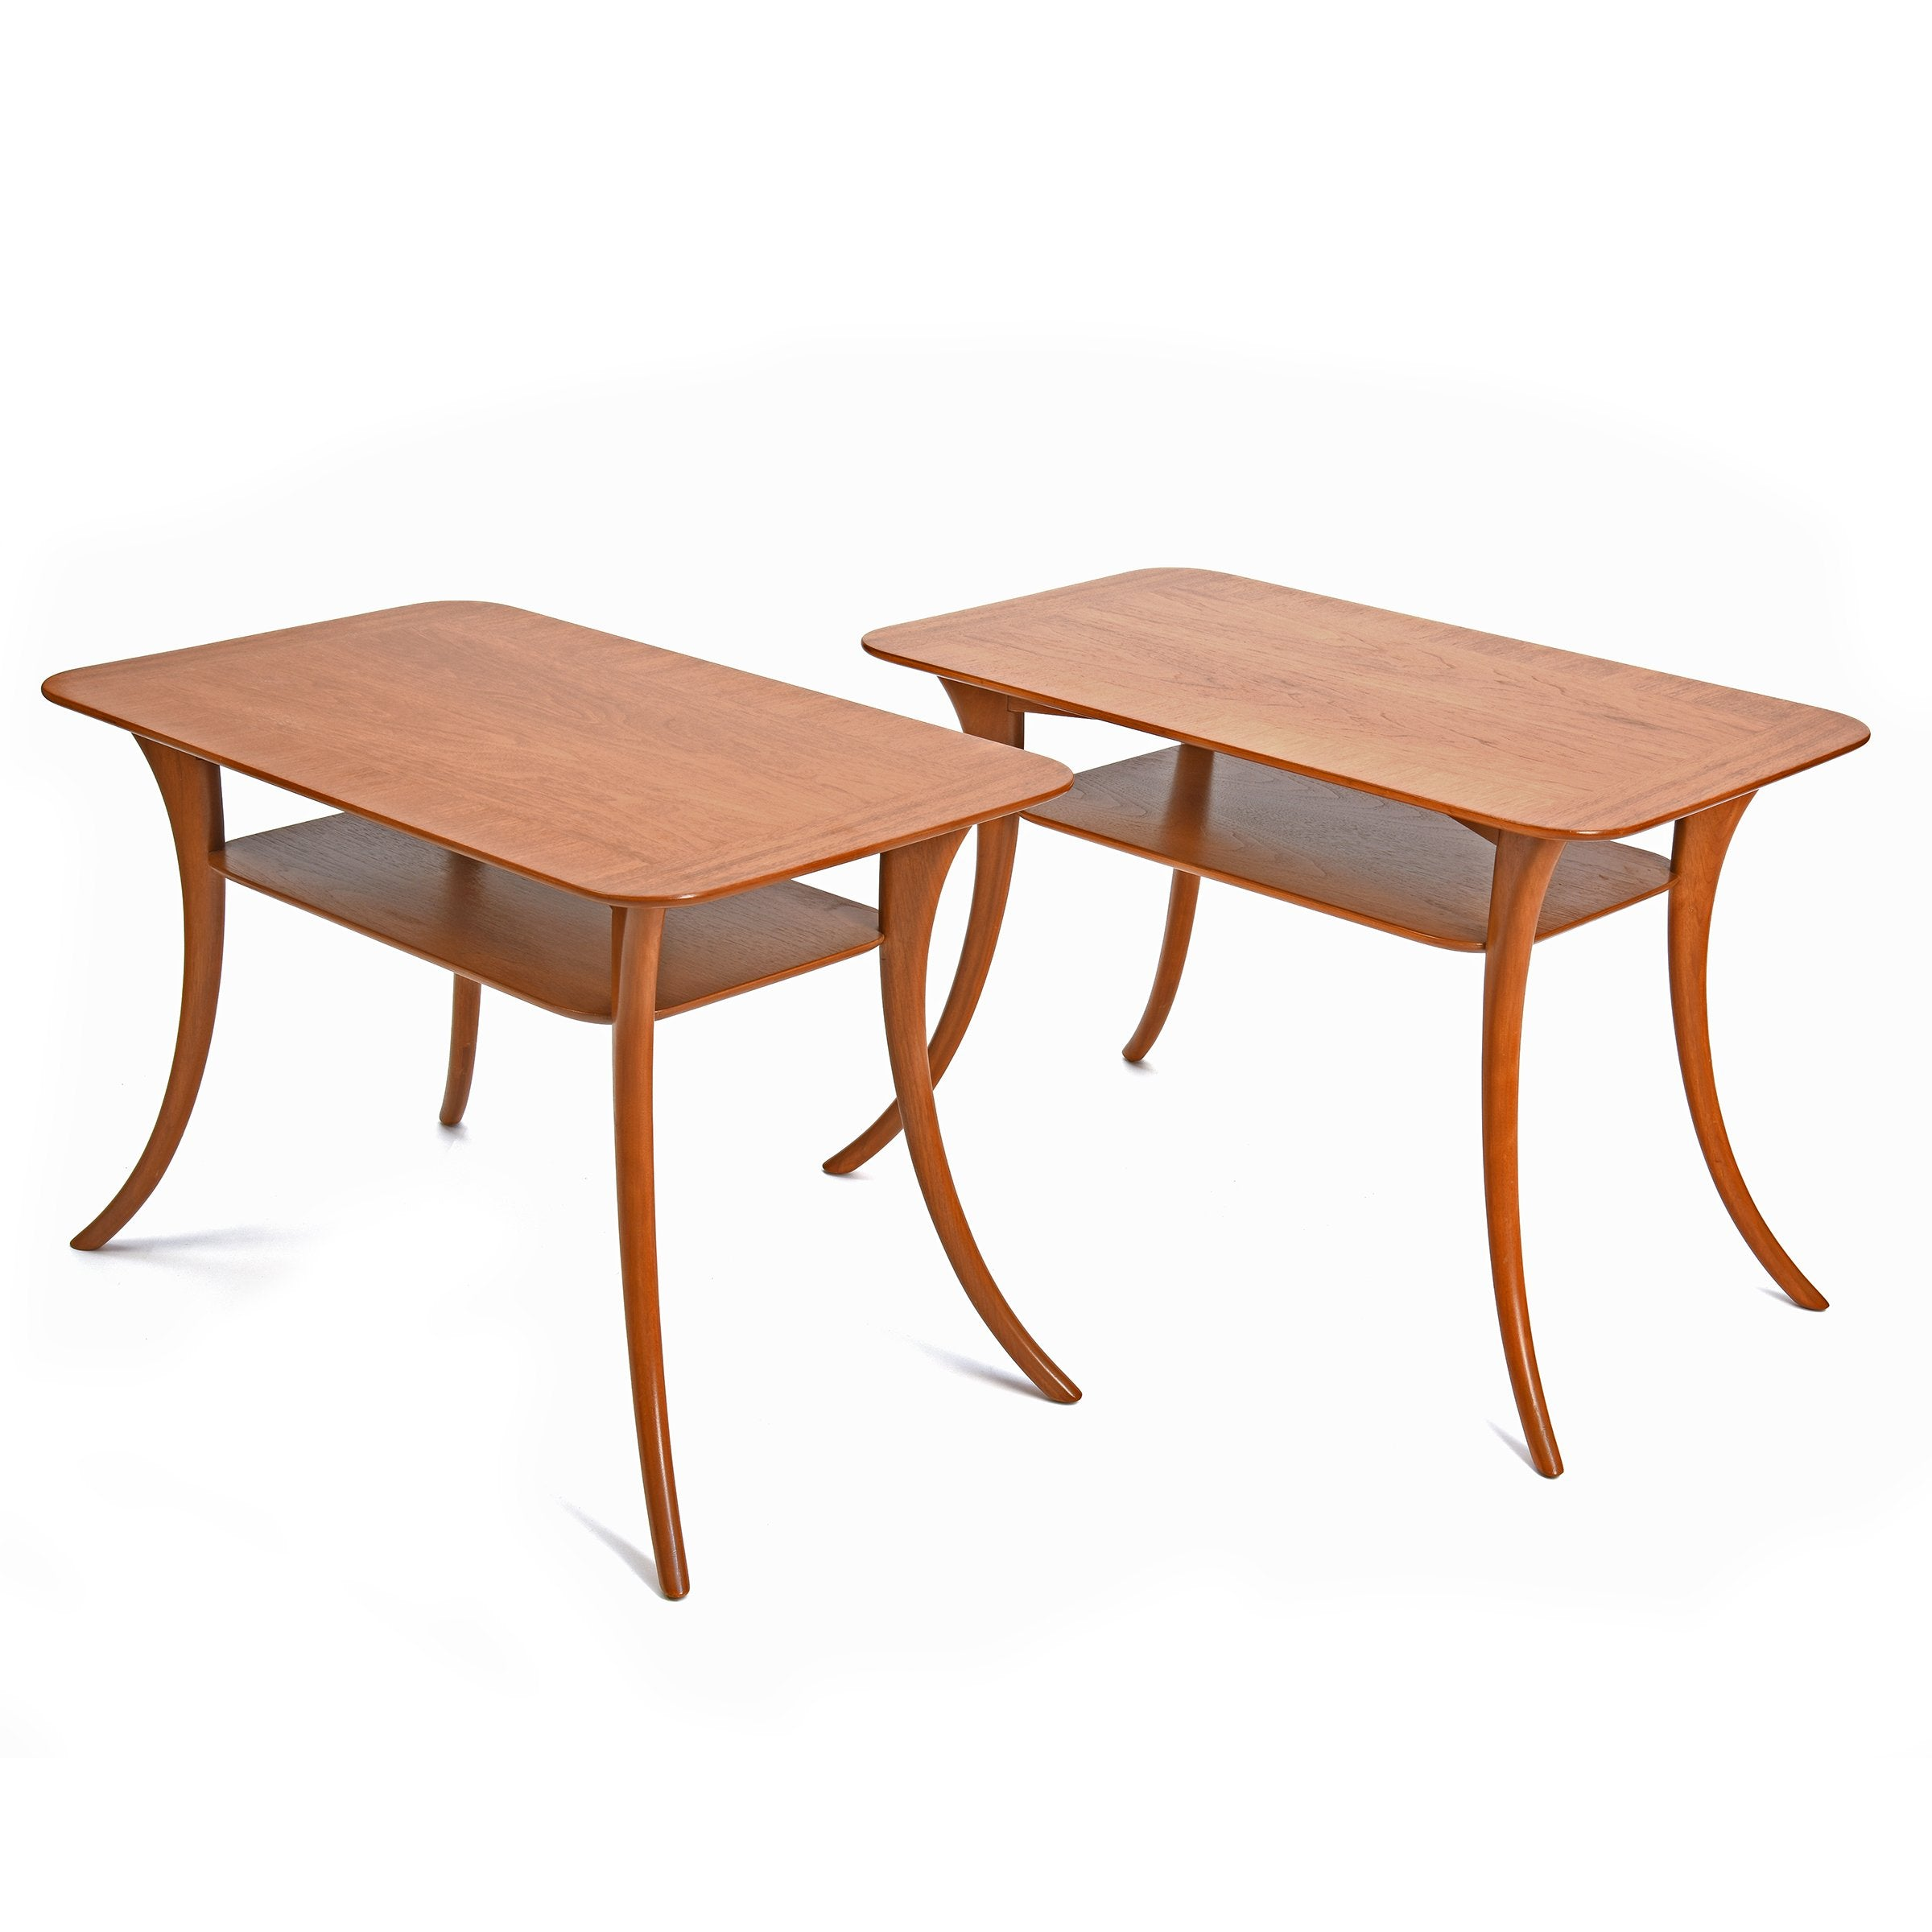 [SOLD] Klismos End Tables by Terence Harold Robsjohn-Gibbings for Widdicomb, Pair, circa 1950s